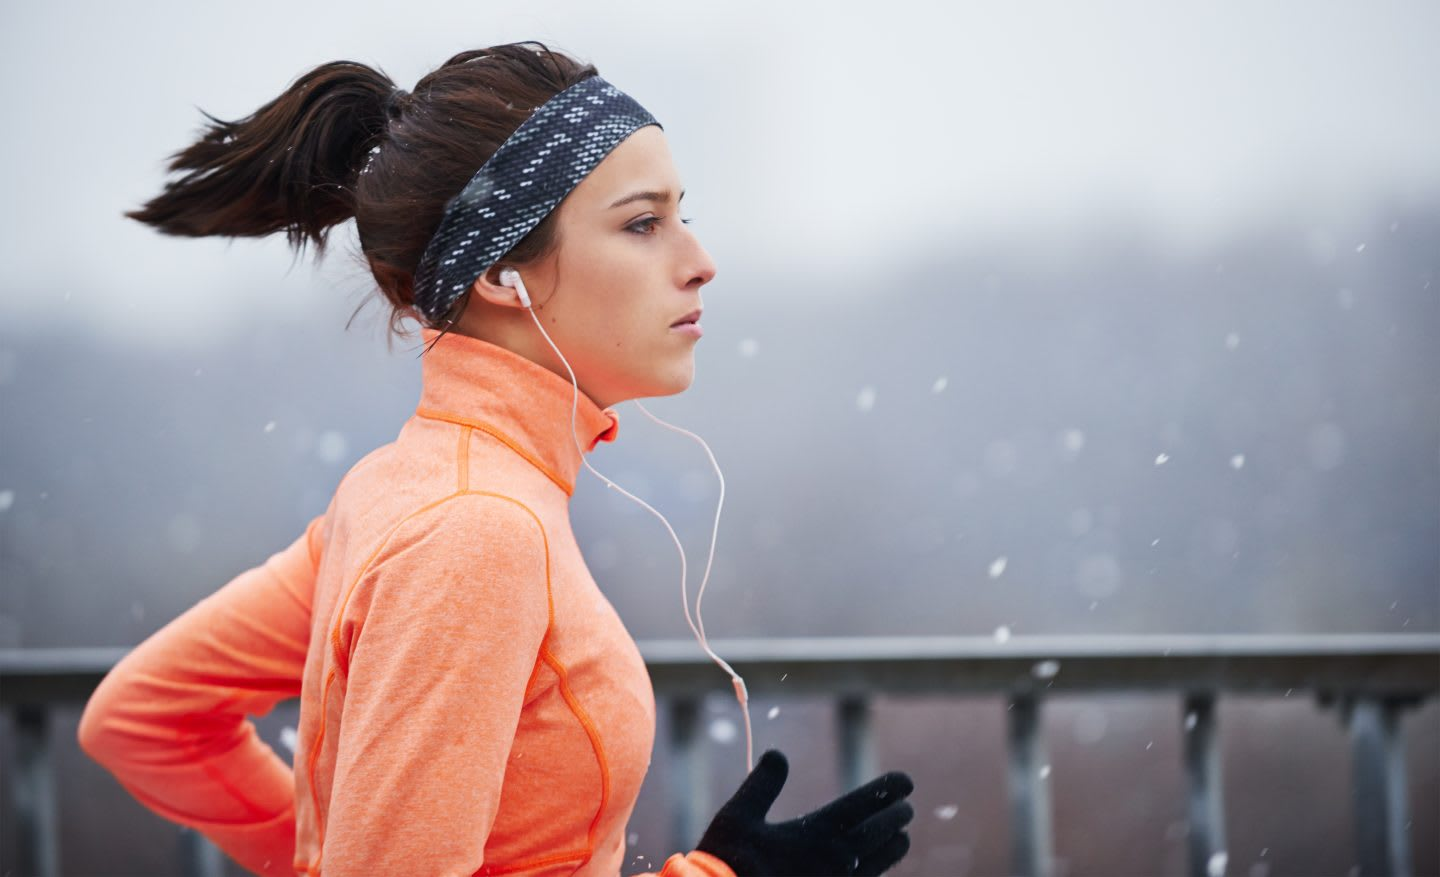 Cropped shot of a young woman running in the snow. running, outdoors, motivation, fitness, snowing.